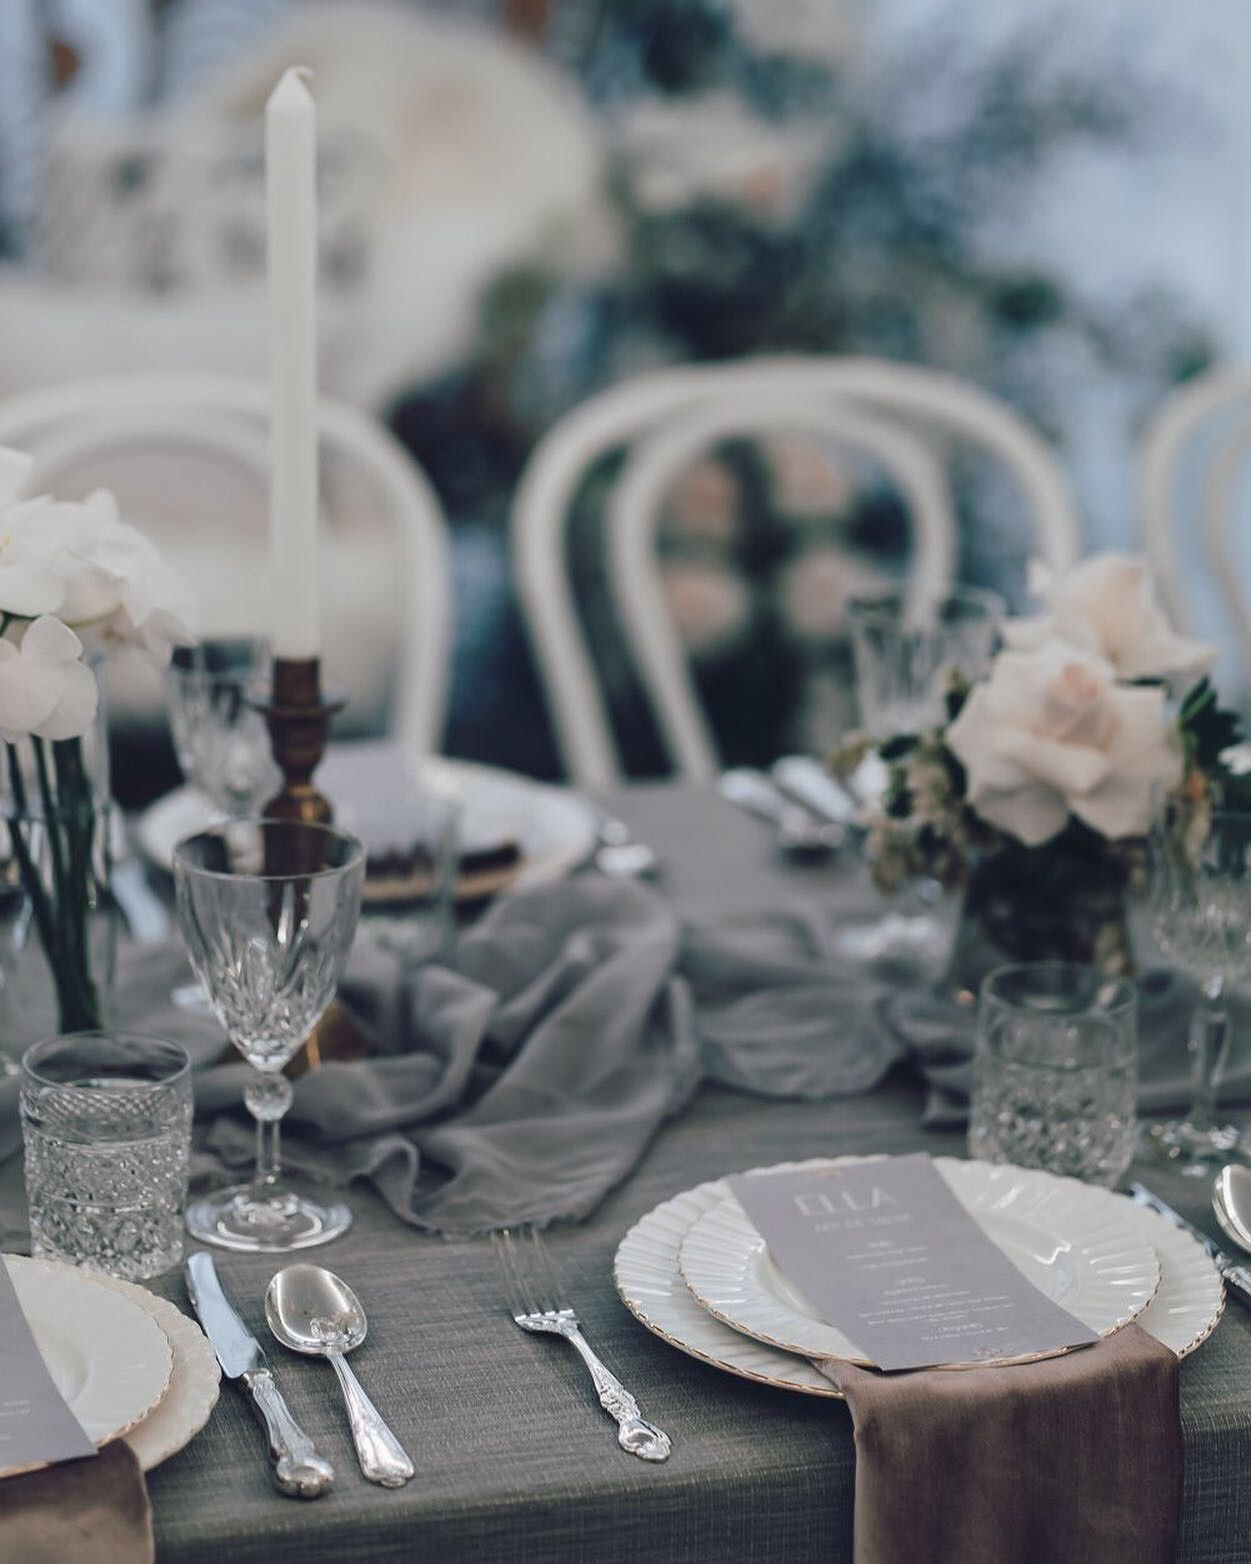 Stunning Vintage Styling For A Gorgeous 21st Birthday Event By Shortandspook Photography Lrphotographymelbourne F Event Wedding Event Planner Furniture Hire